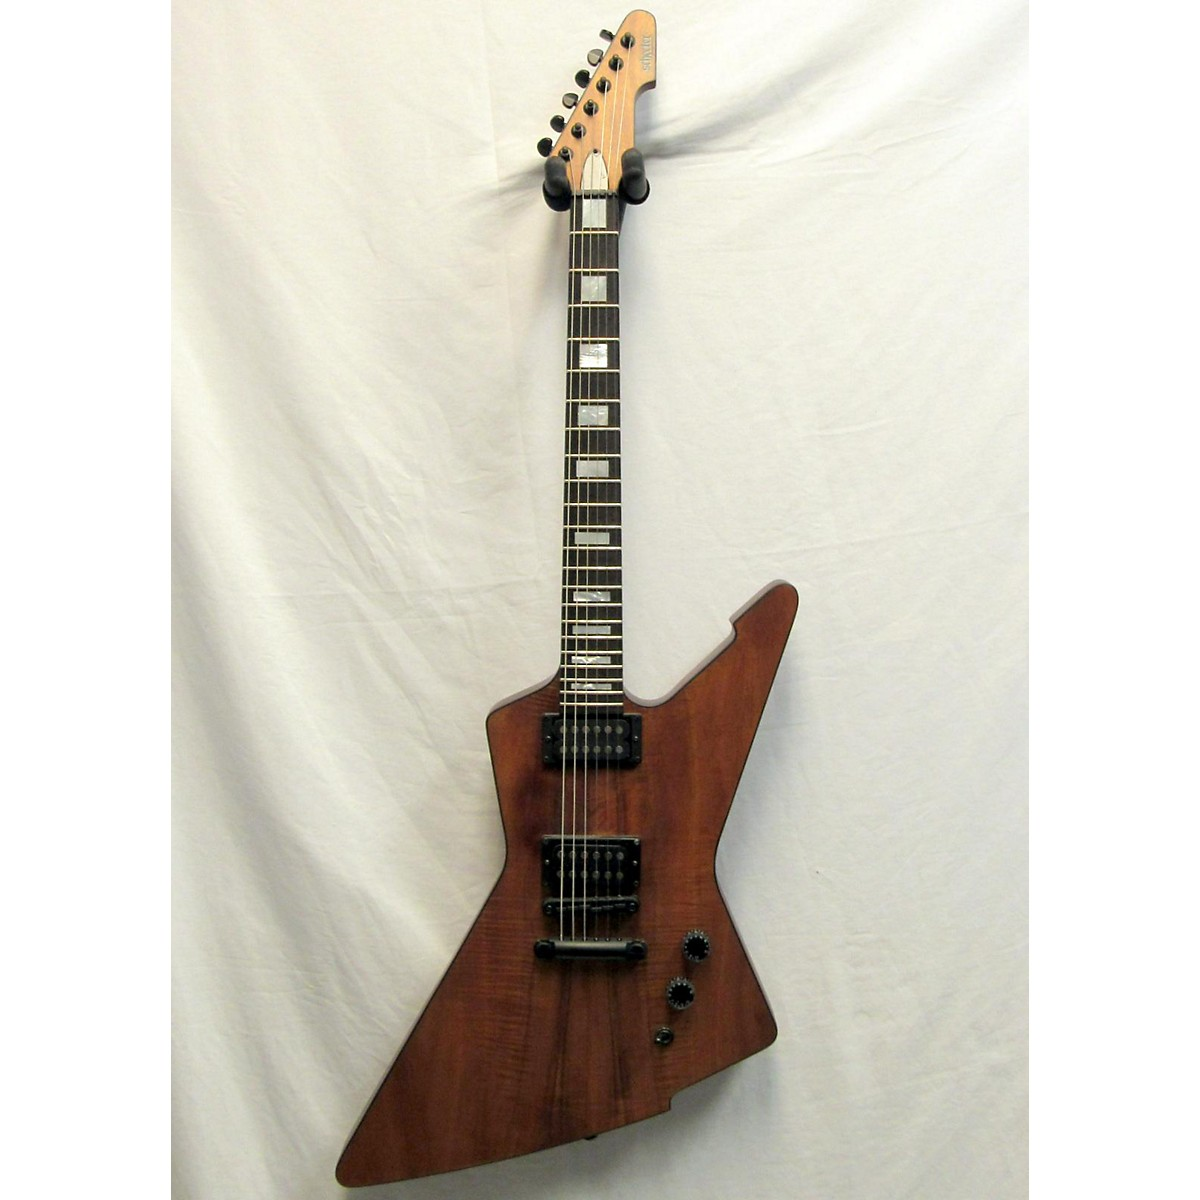 Schecter Guitar Research E-1 Koa Solid Body Electric Guitar